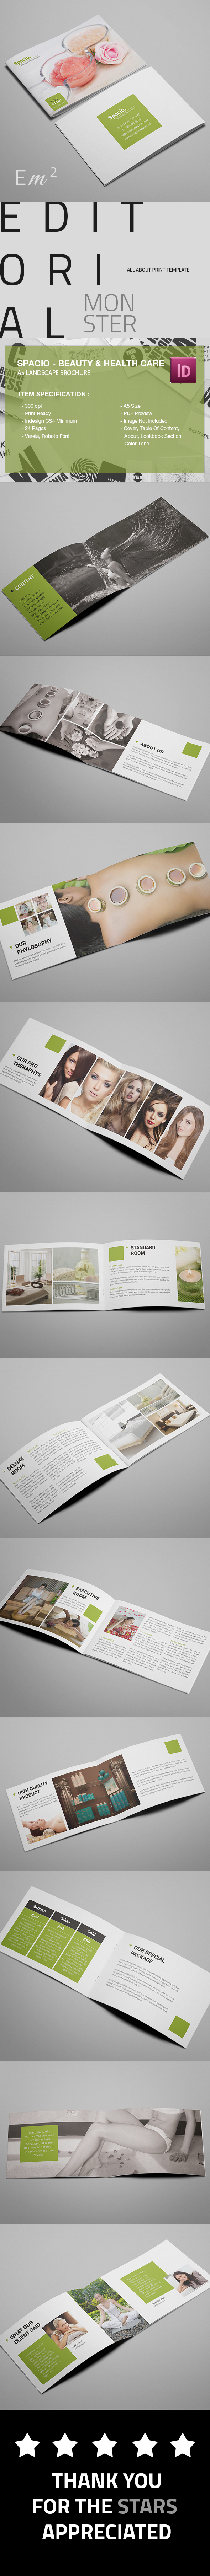 a5 Booklet brochure catalog corporate fitness flyer green hair Style health care jacuzzi Landscape nail polish